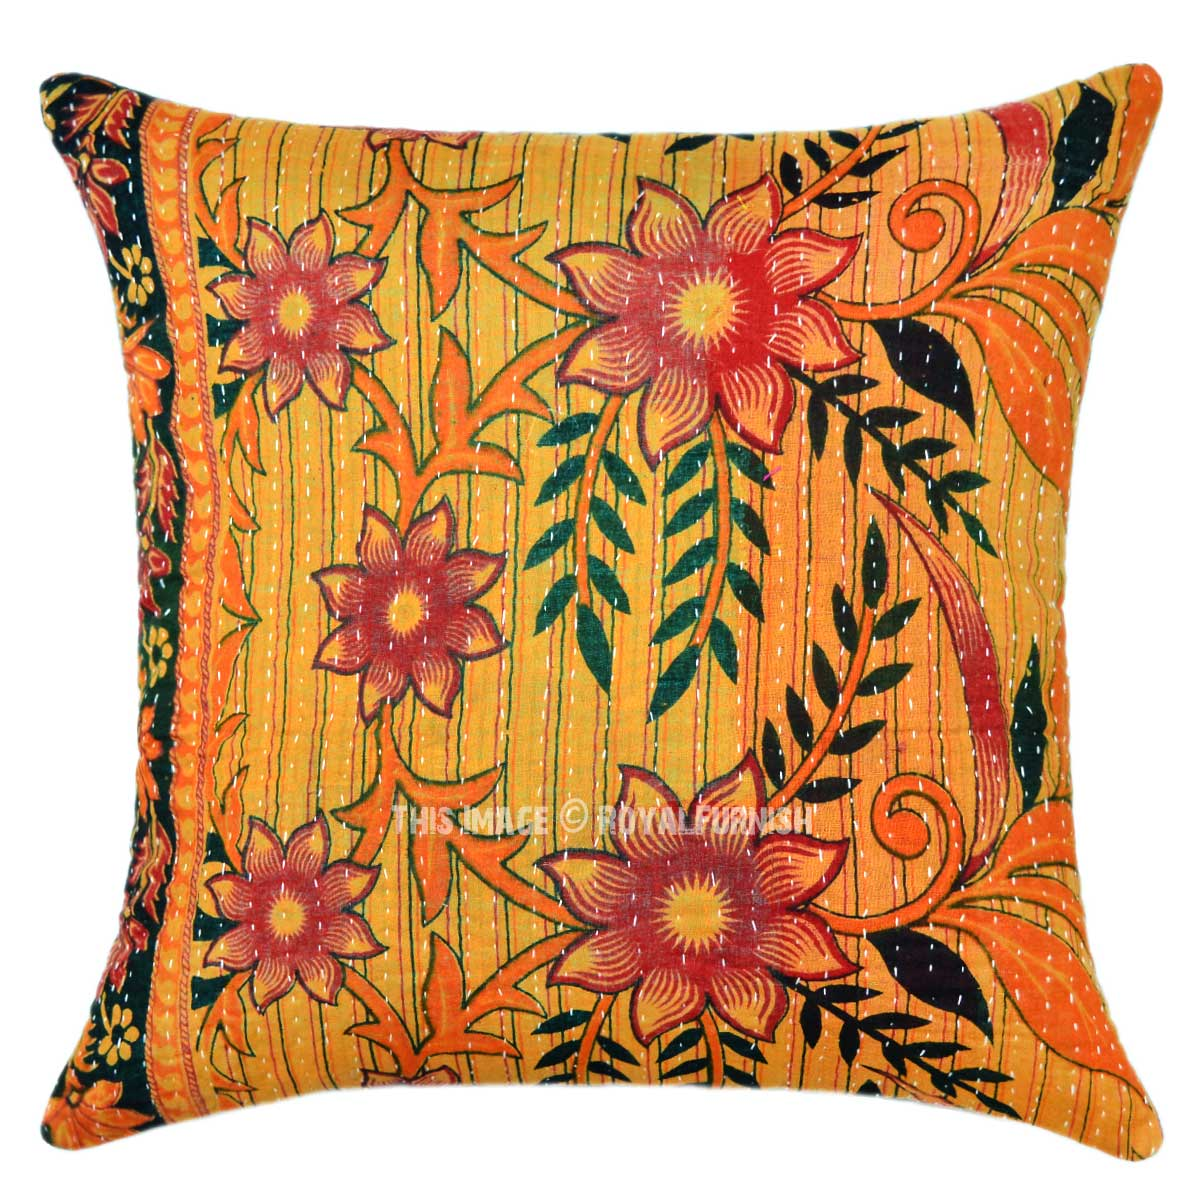 Vintage Decorative Throw Pillows : Orange Multi Flower Plant Decorative Vintage Kantha Throw Pillow Sham - RoyalFurnish.com